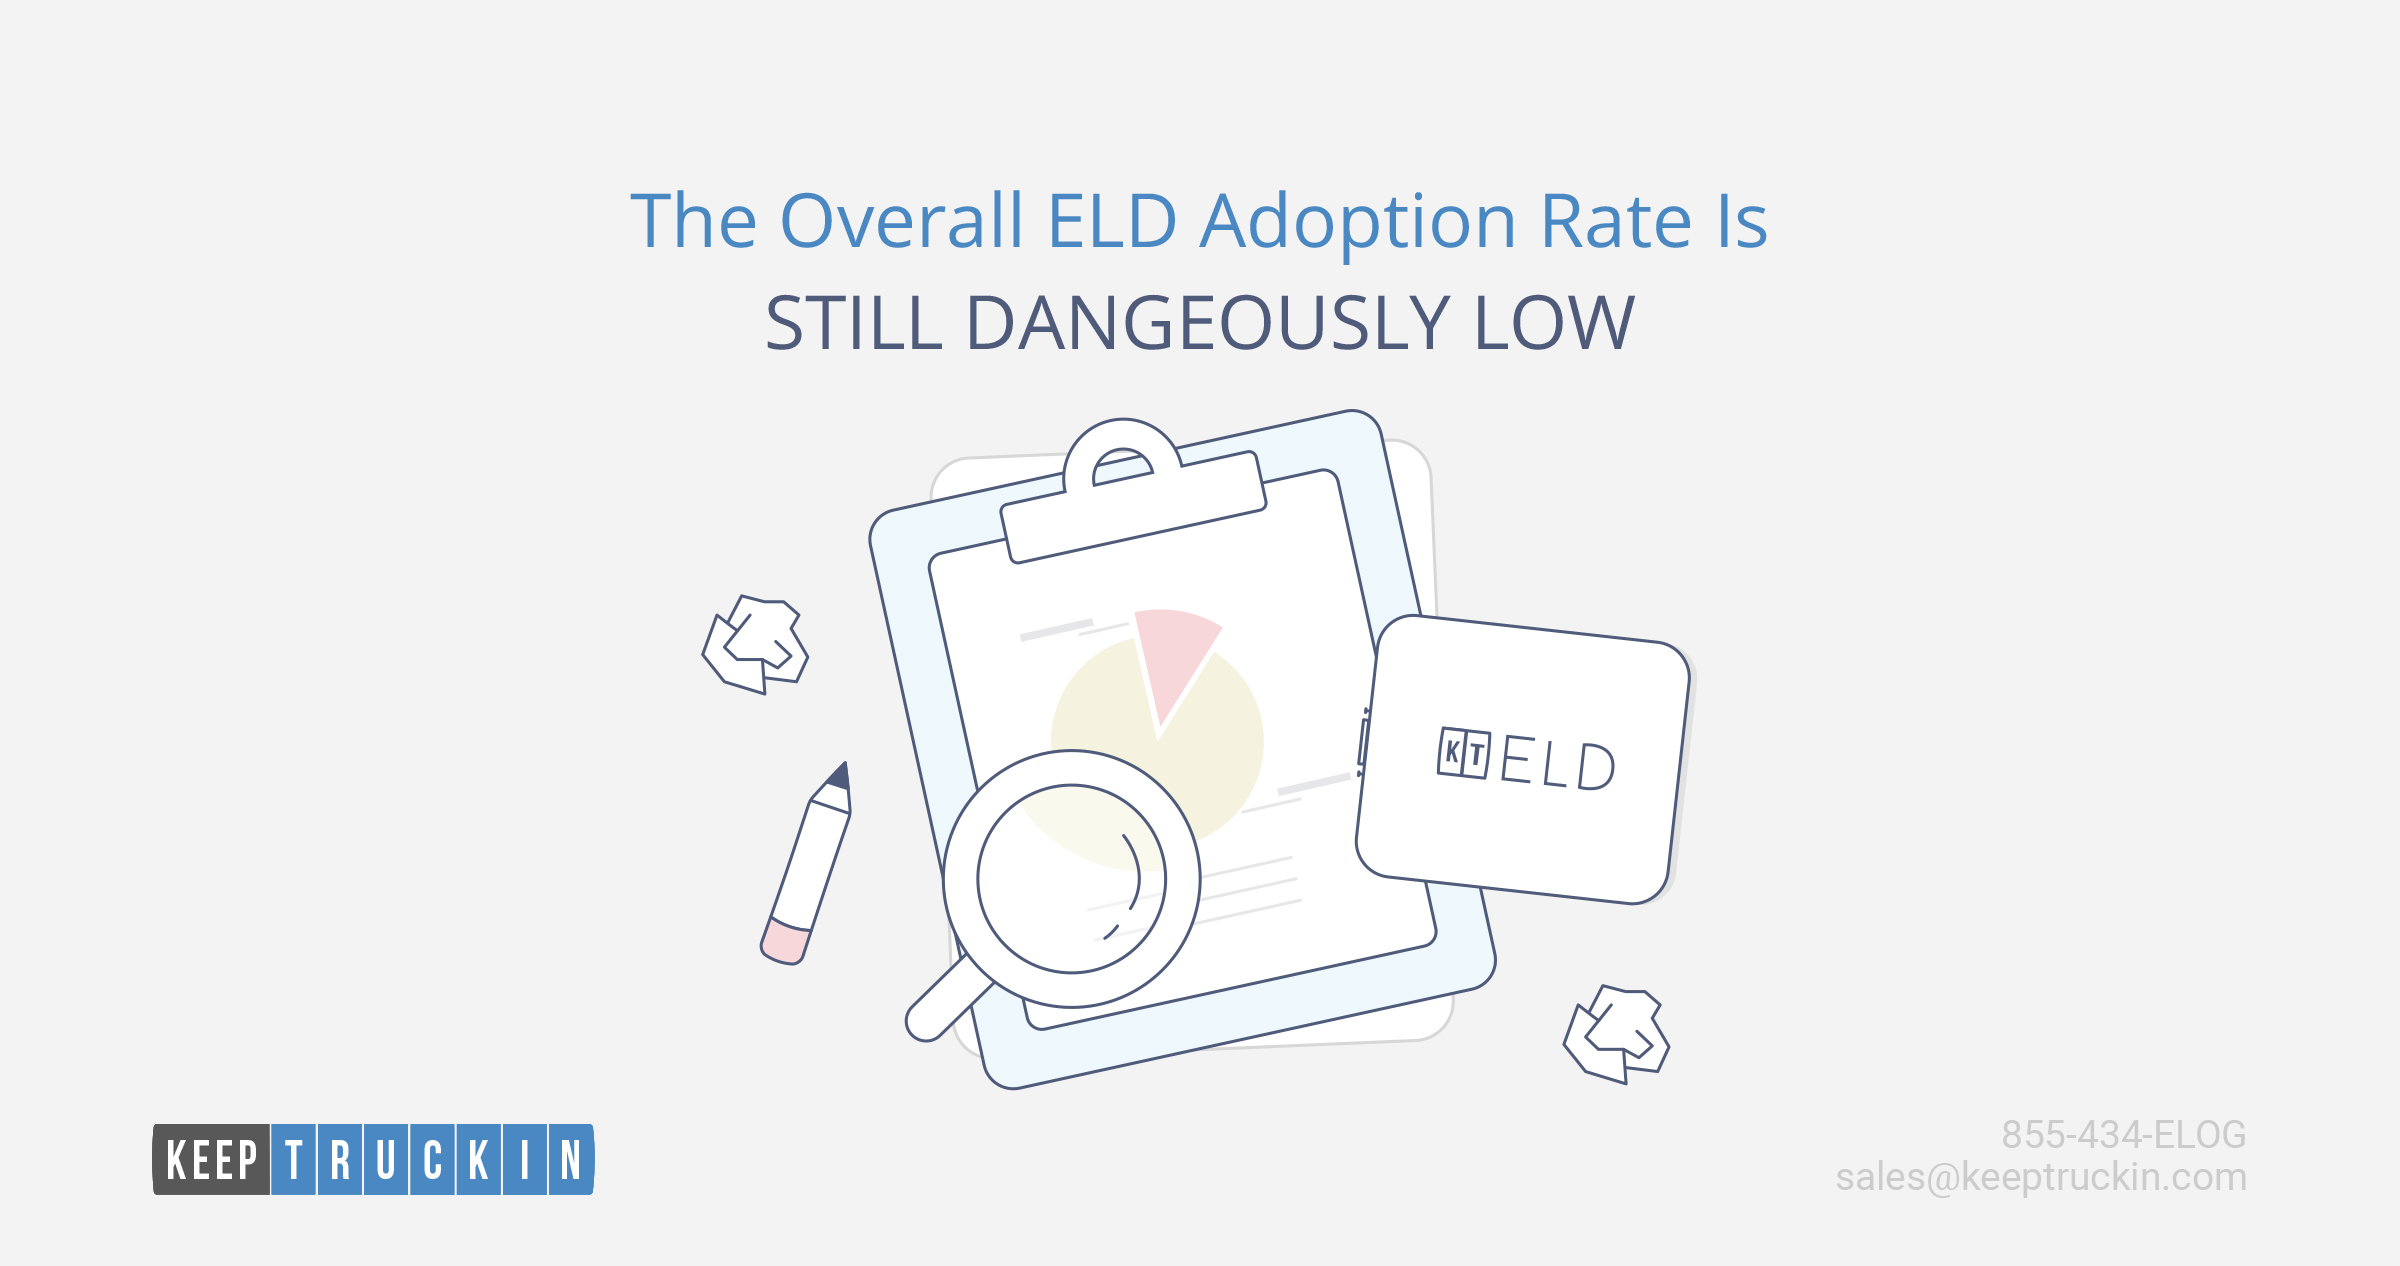 The Overall ELD Adoption Rate is Still Dangerously Low